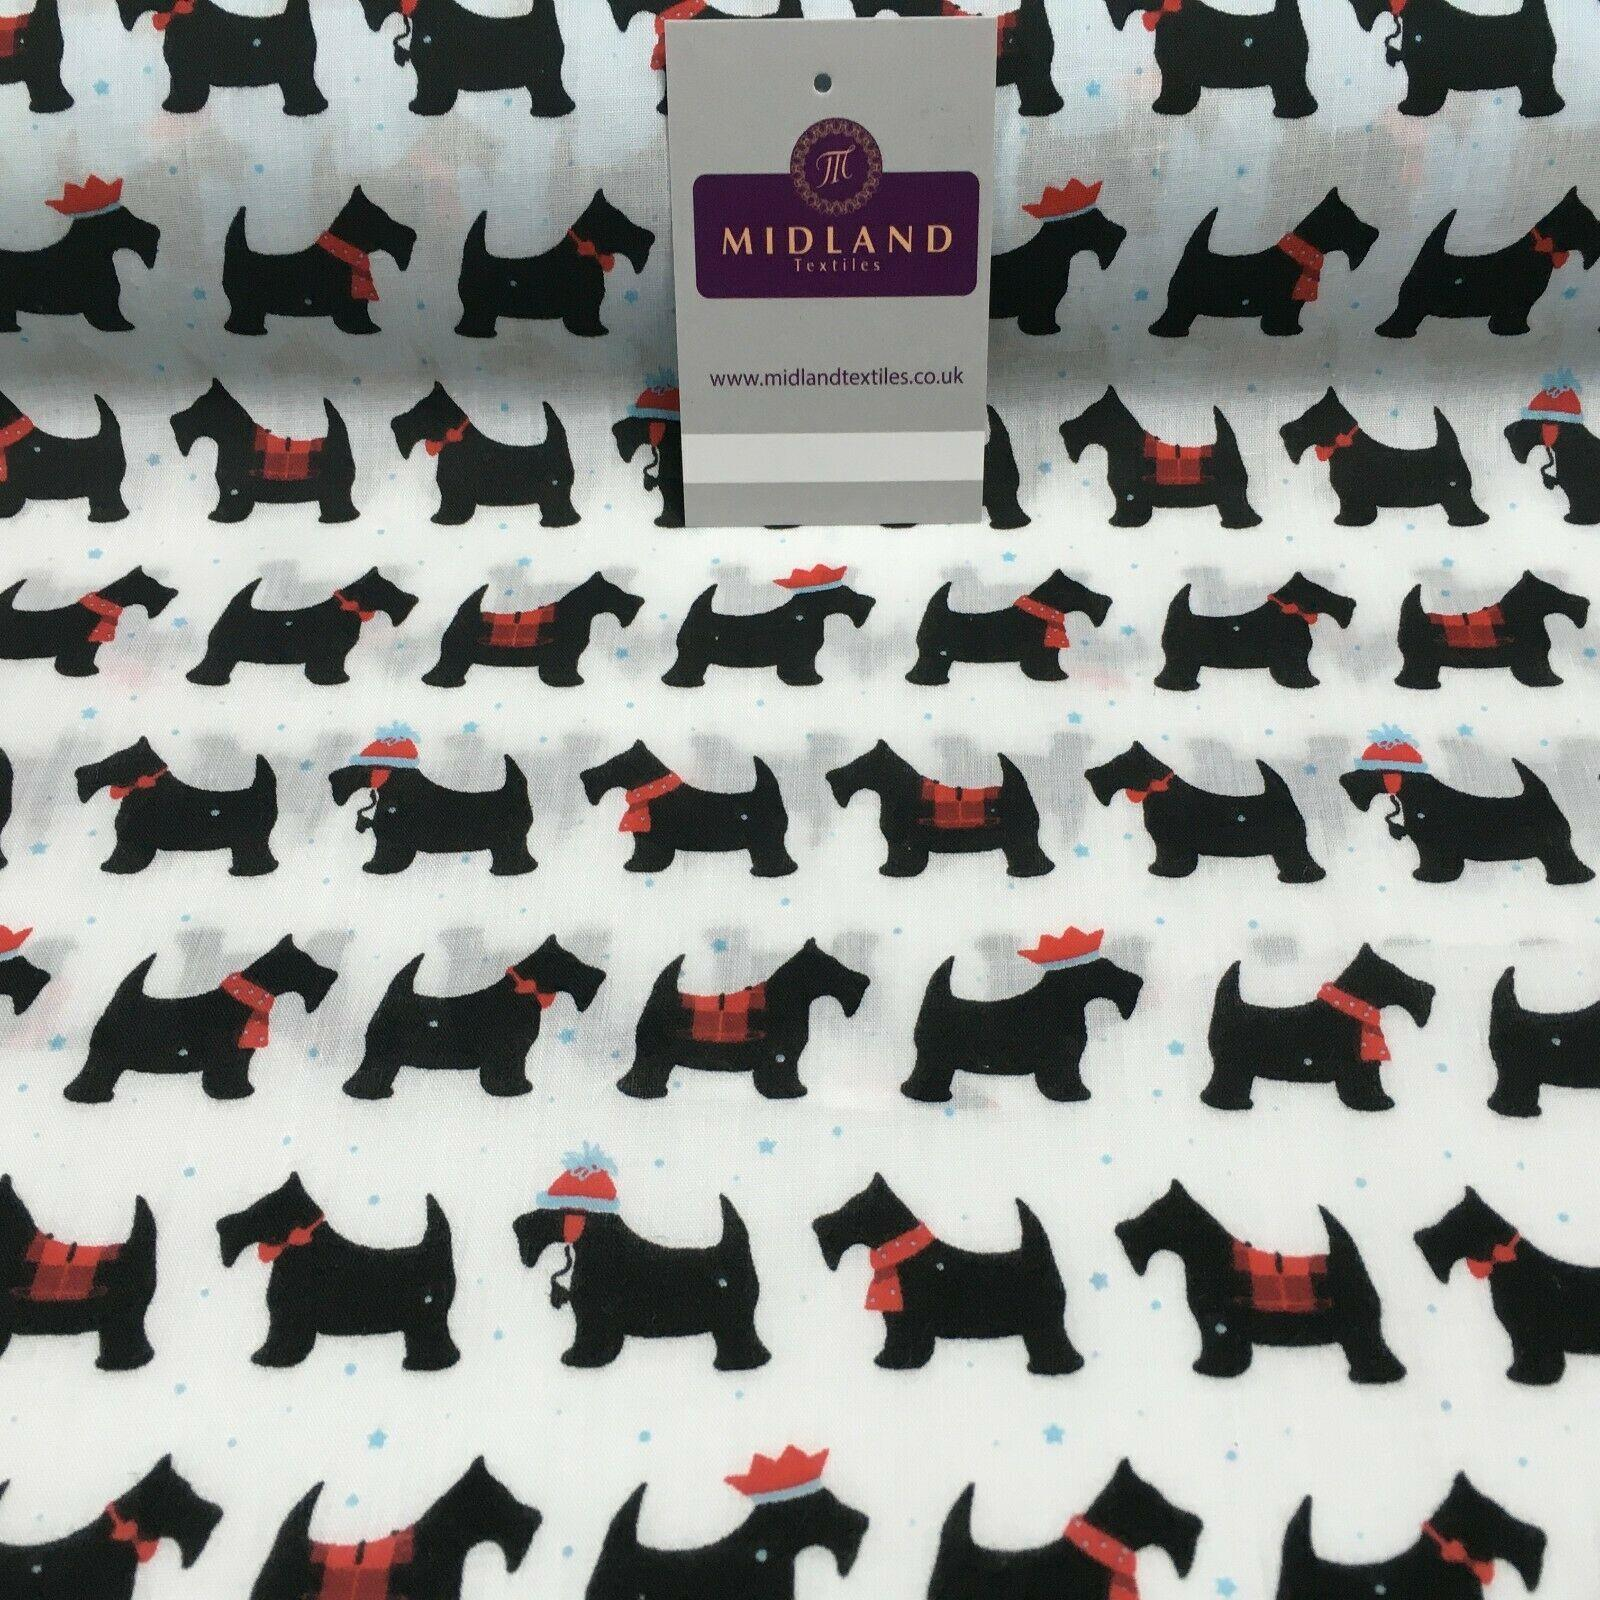 Christmas Scotty Dog Printed Polycotton Fabric 110 cm MD1286 Mtex